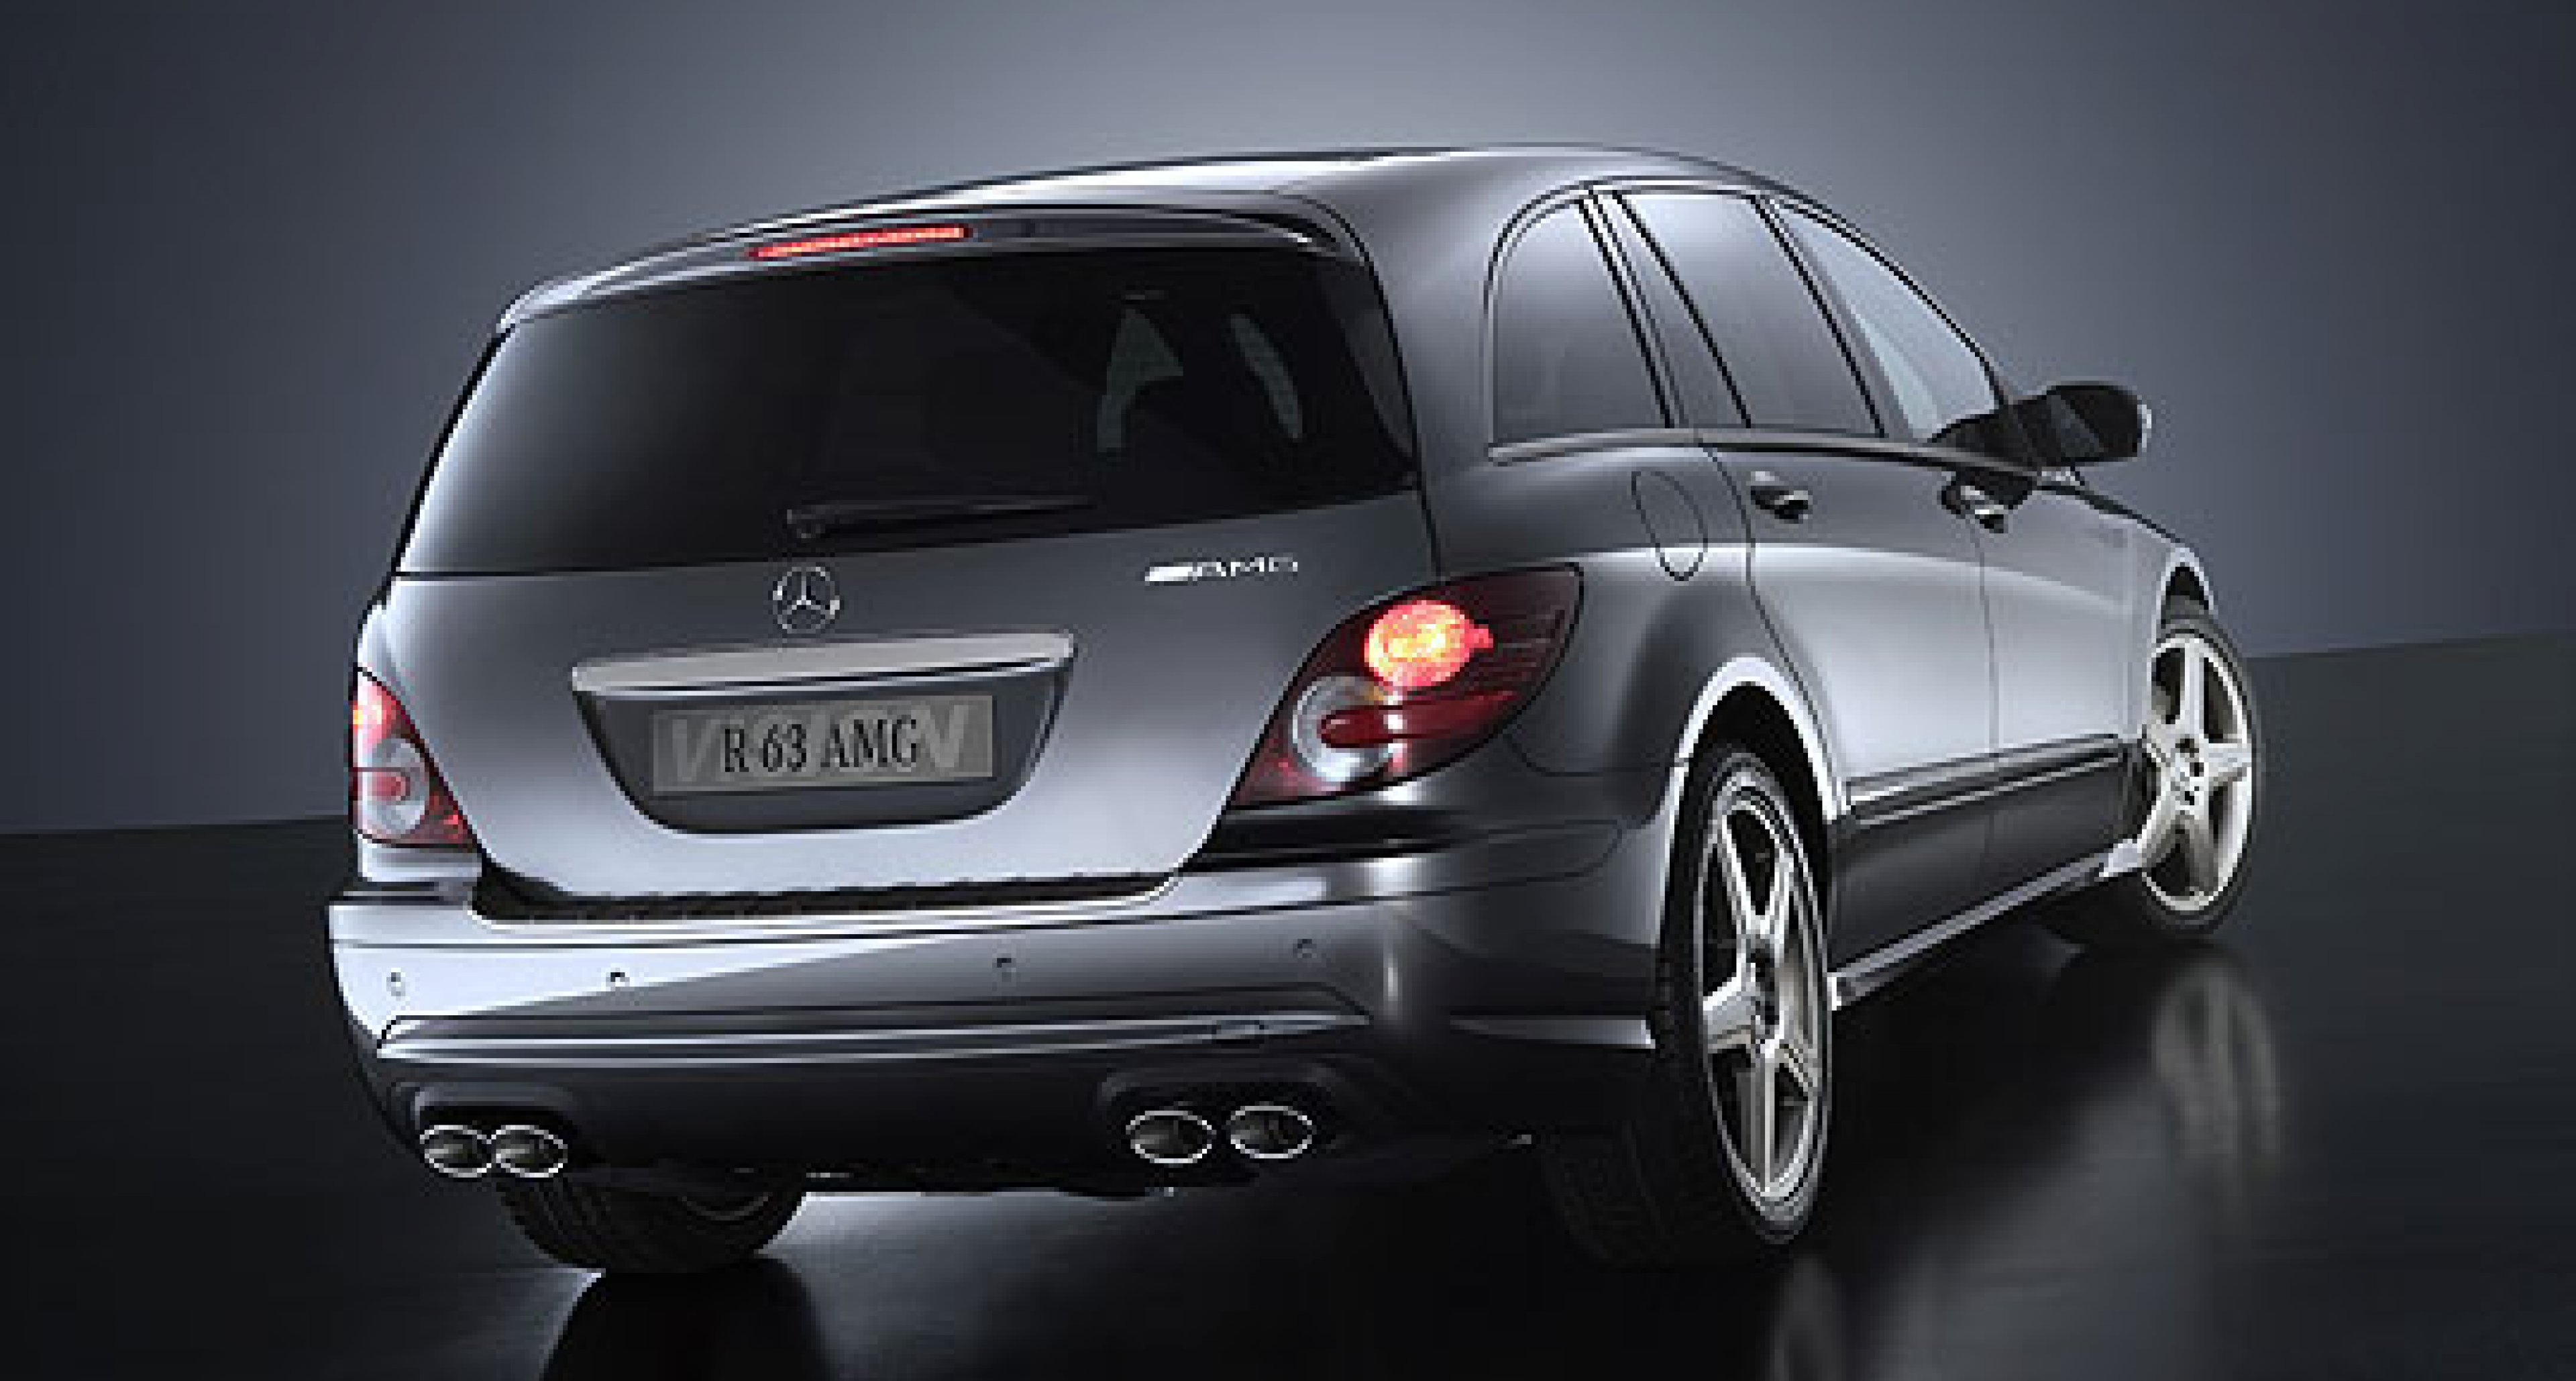 'Vision R 63 AMG': World premiere at the 61st Frankfurt Motor Show